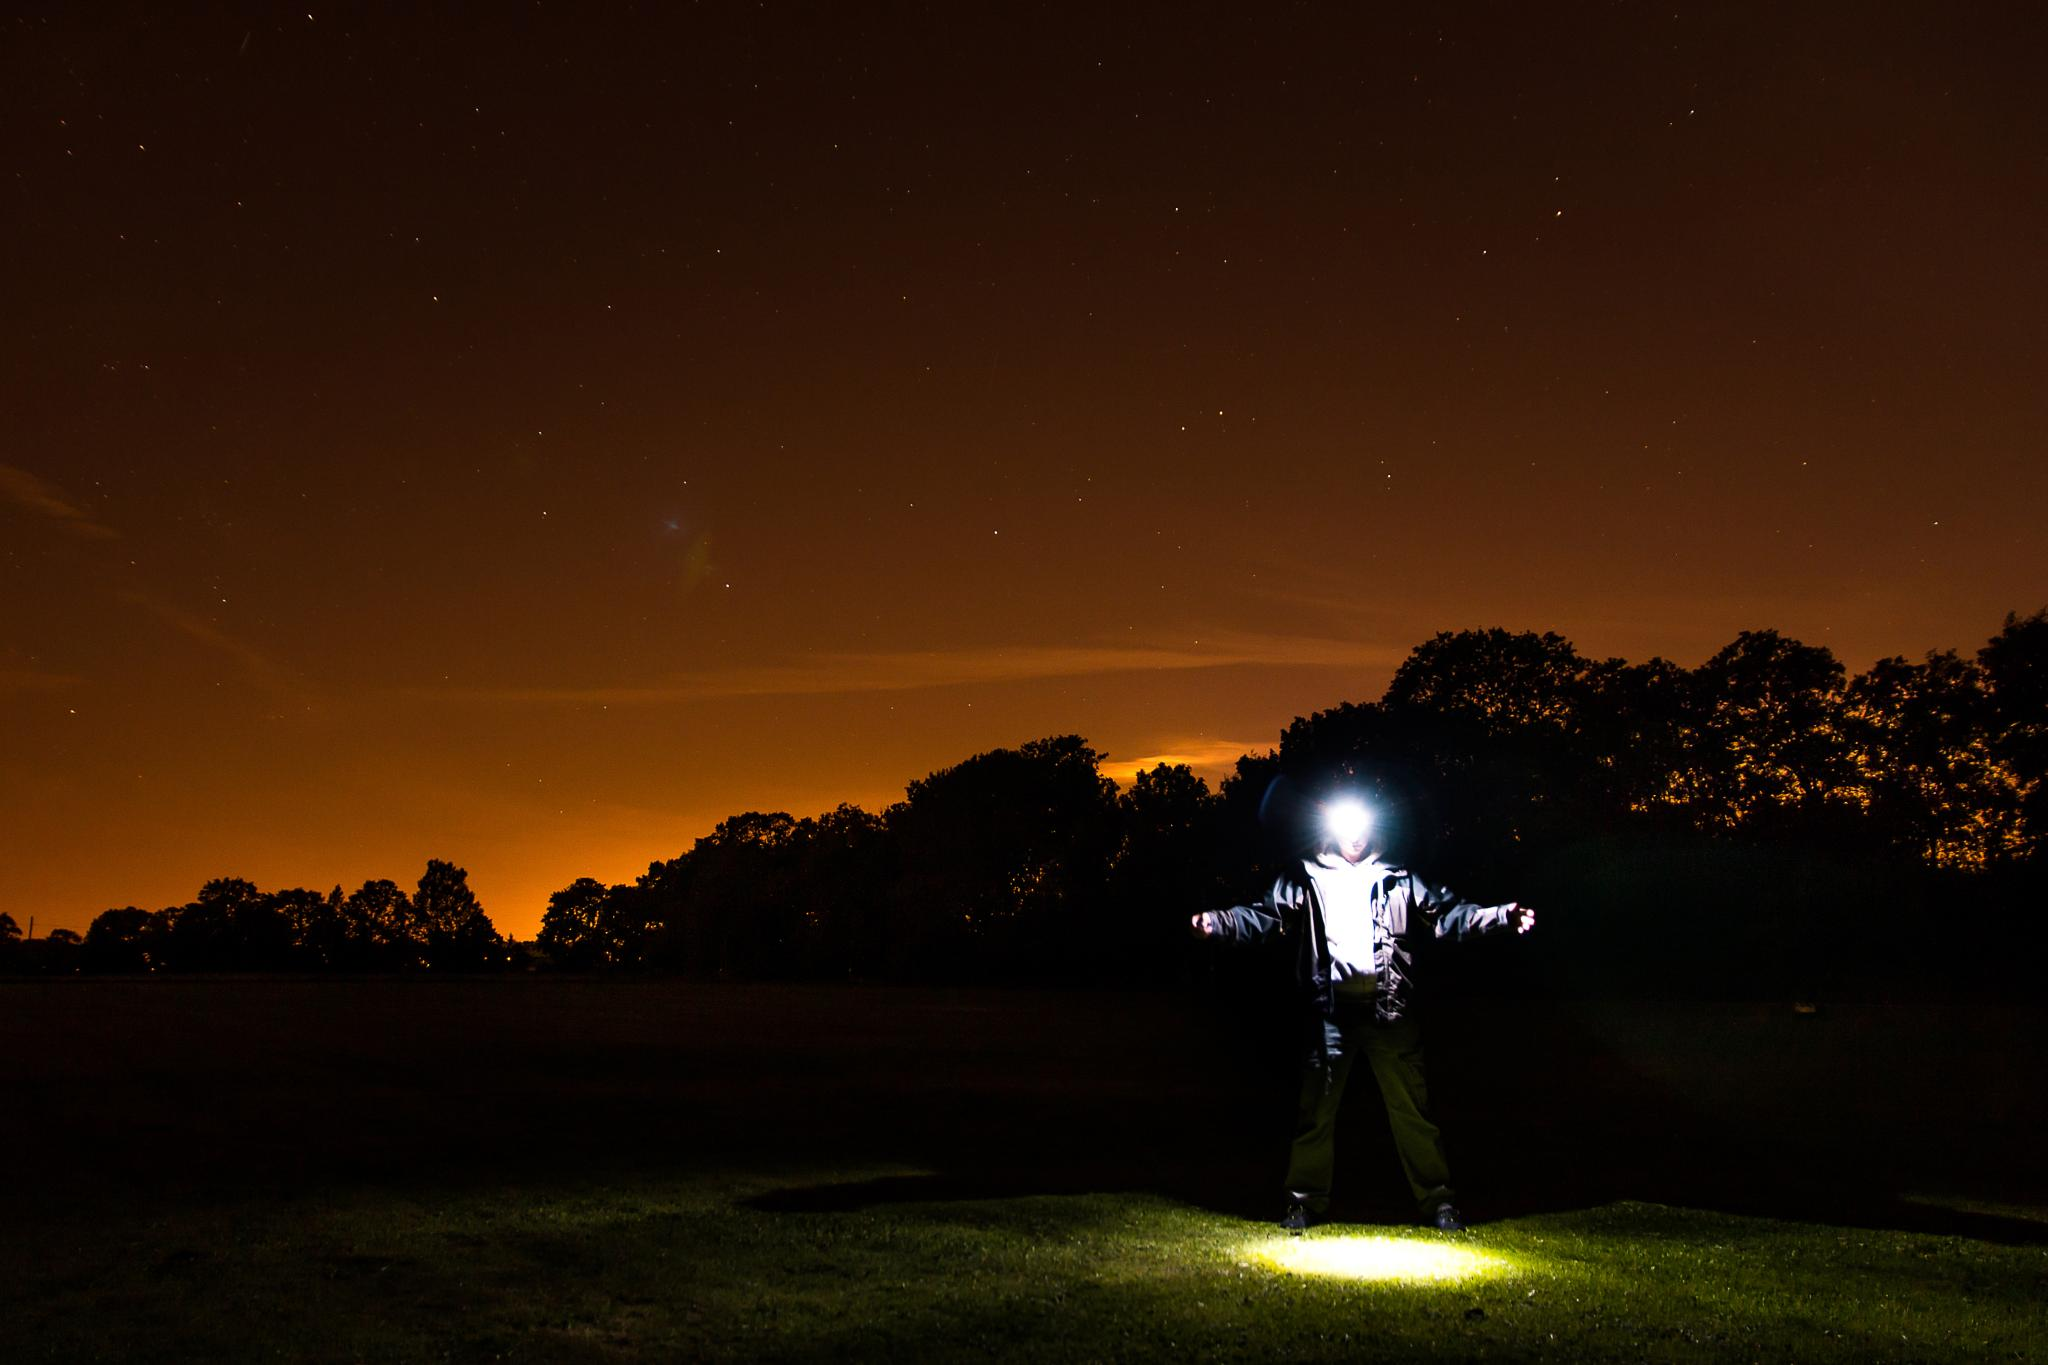 Beam me up by Photogr@pher L@rssa L@rsson